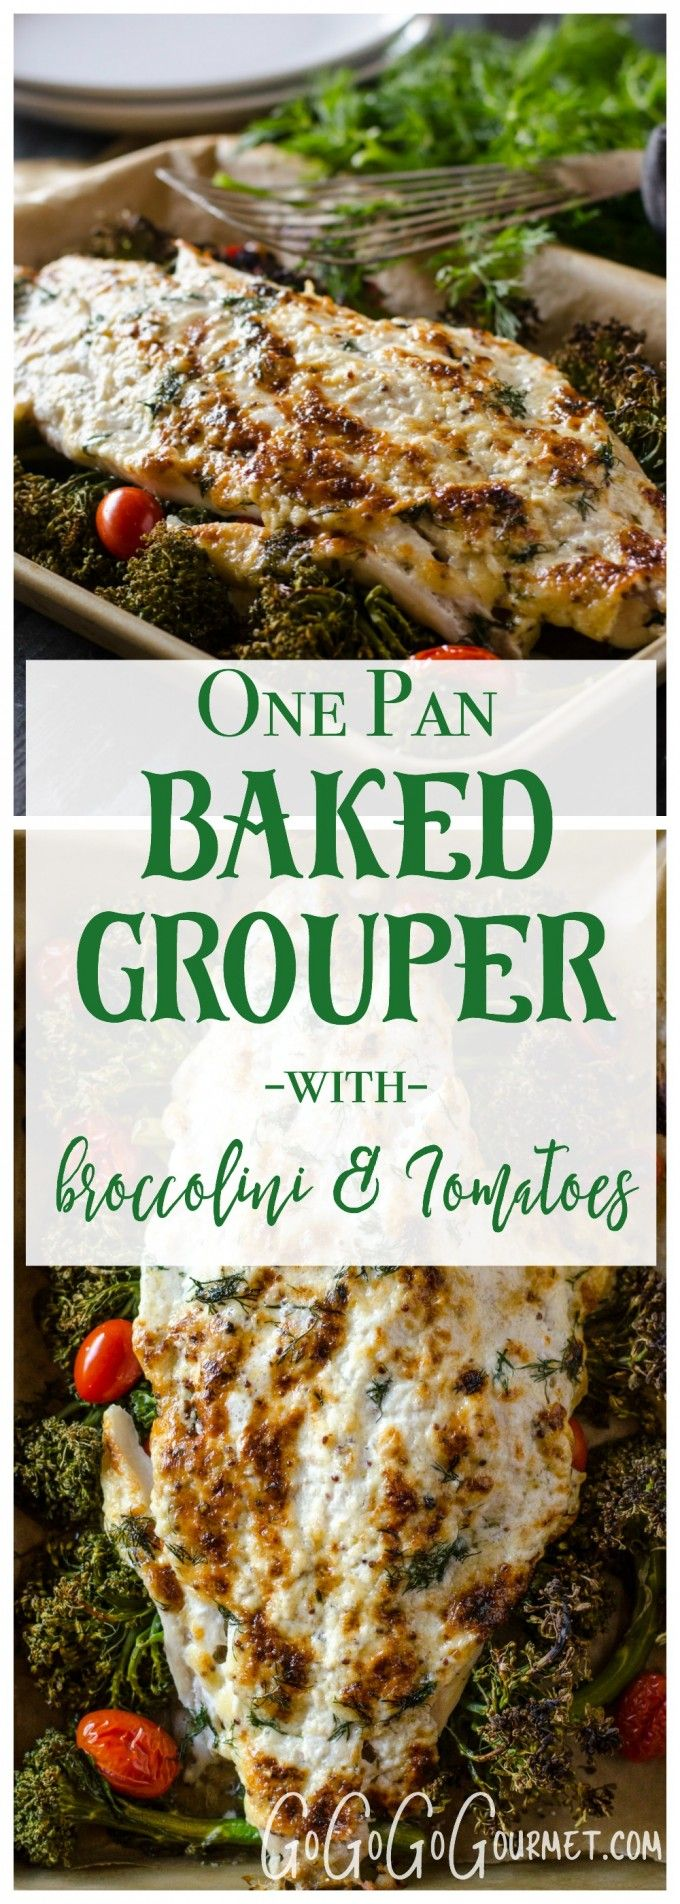 Easy grouper recipes baked